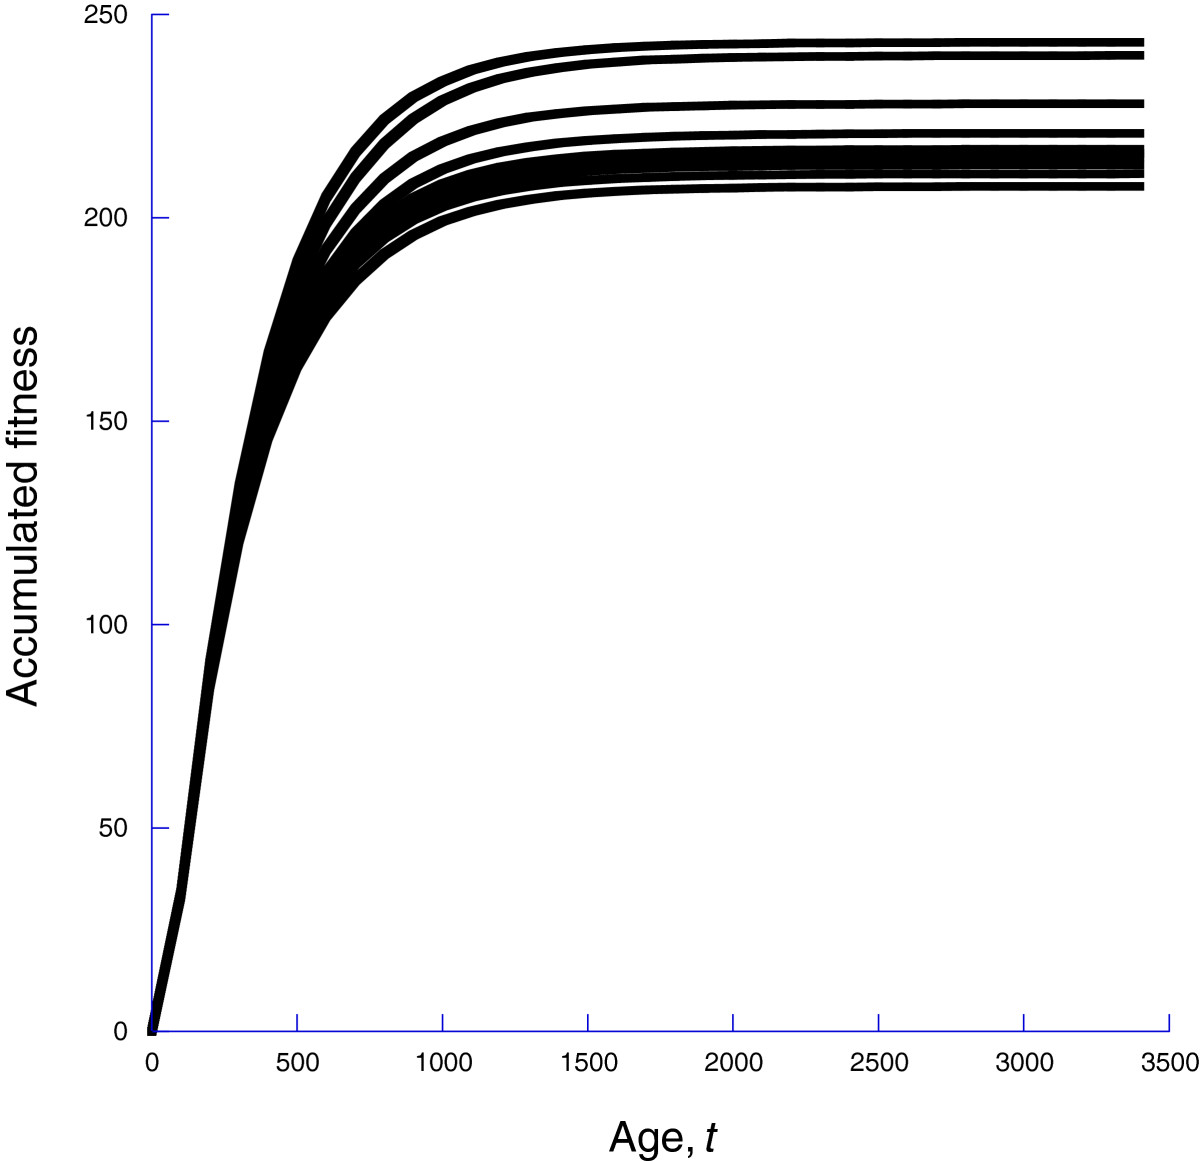 http://static-content.springer.com/image/art%3A10.1186%2F1742-4682-10-5/MediaObjects/12976_2012_Article_425_Fig7_HTML.jpg